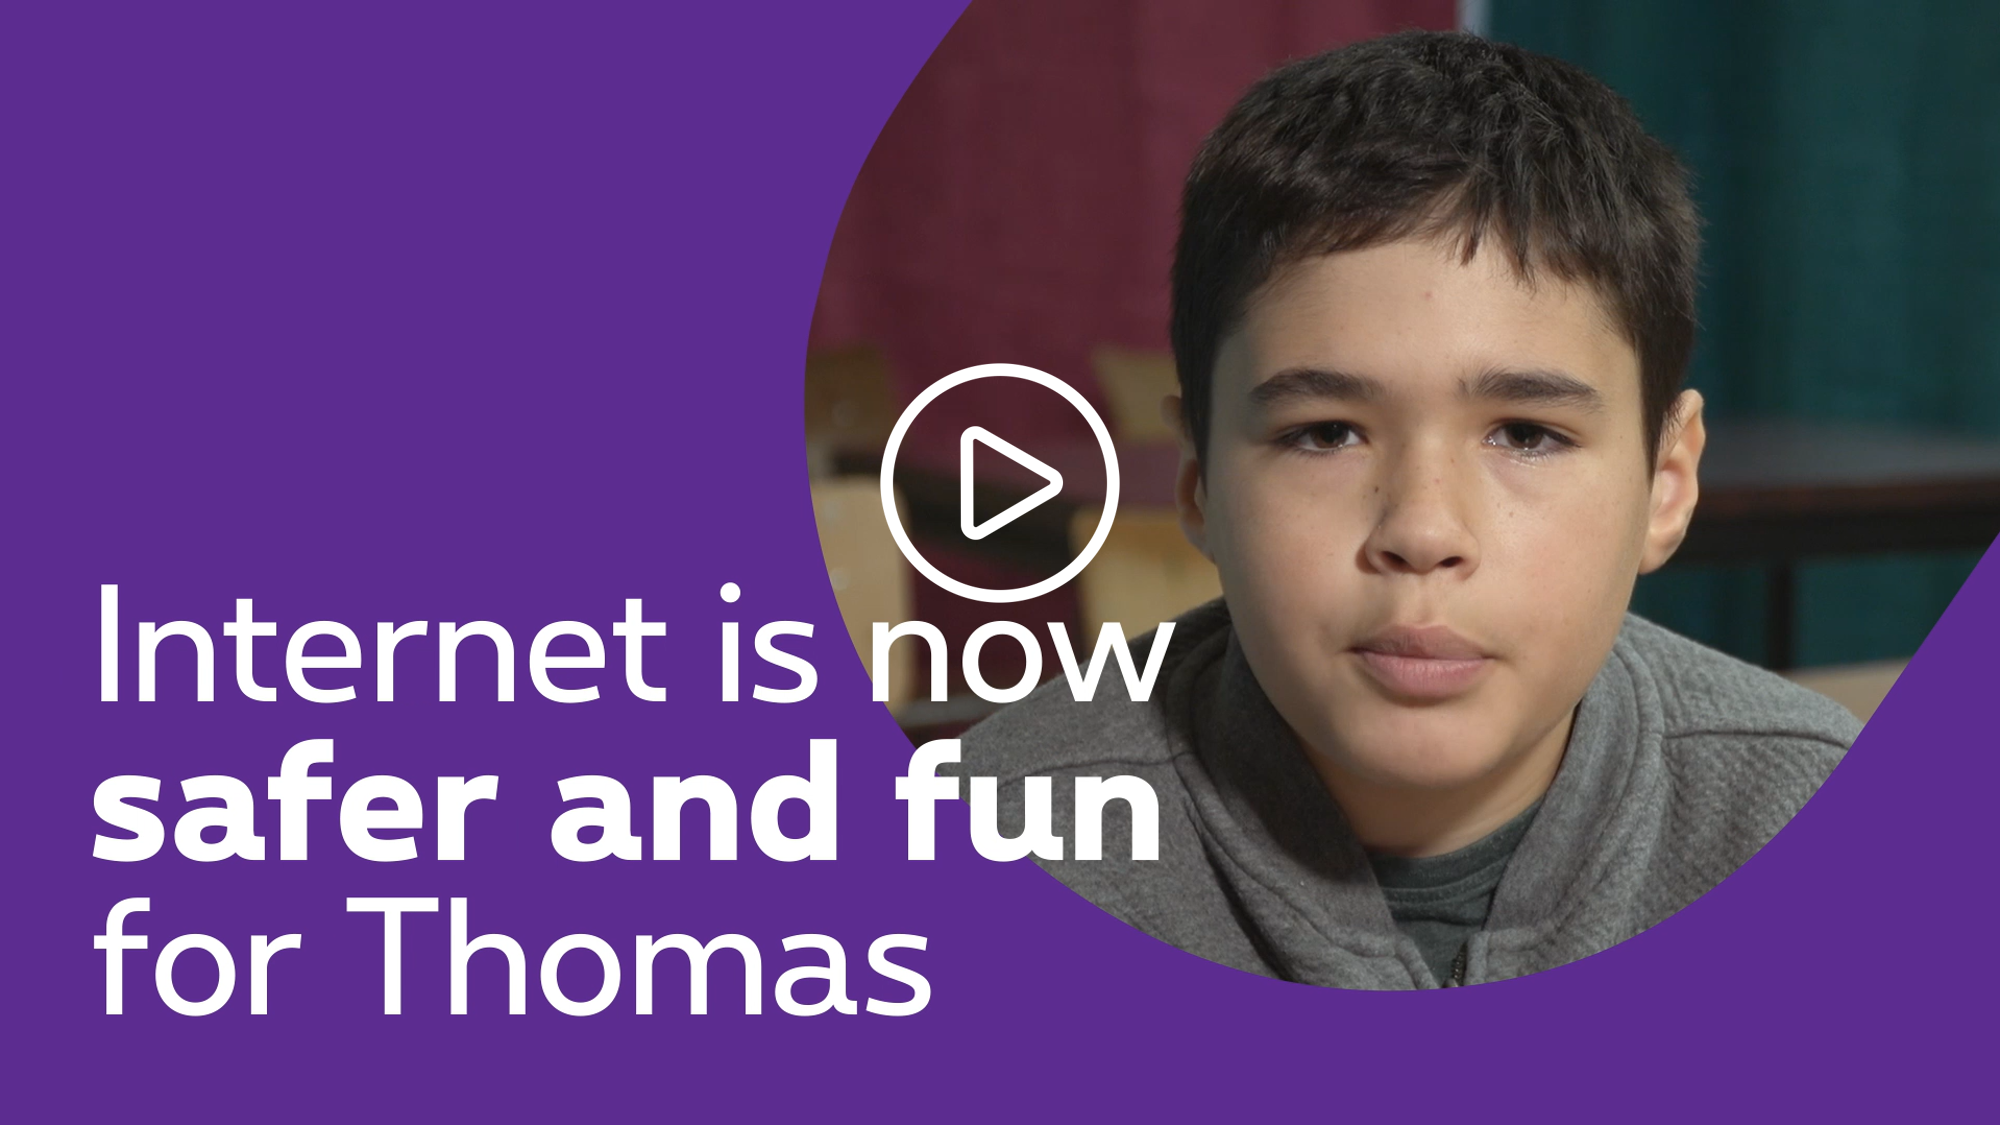 Internet is now safe and fun for Thomas - click to discover the video